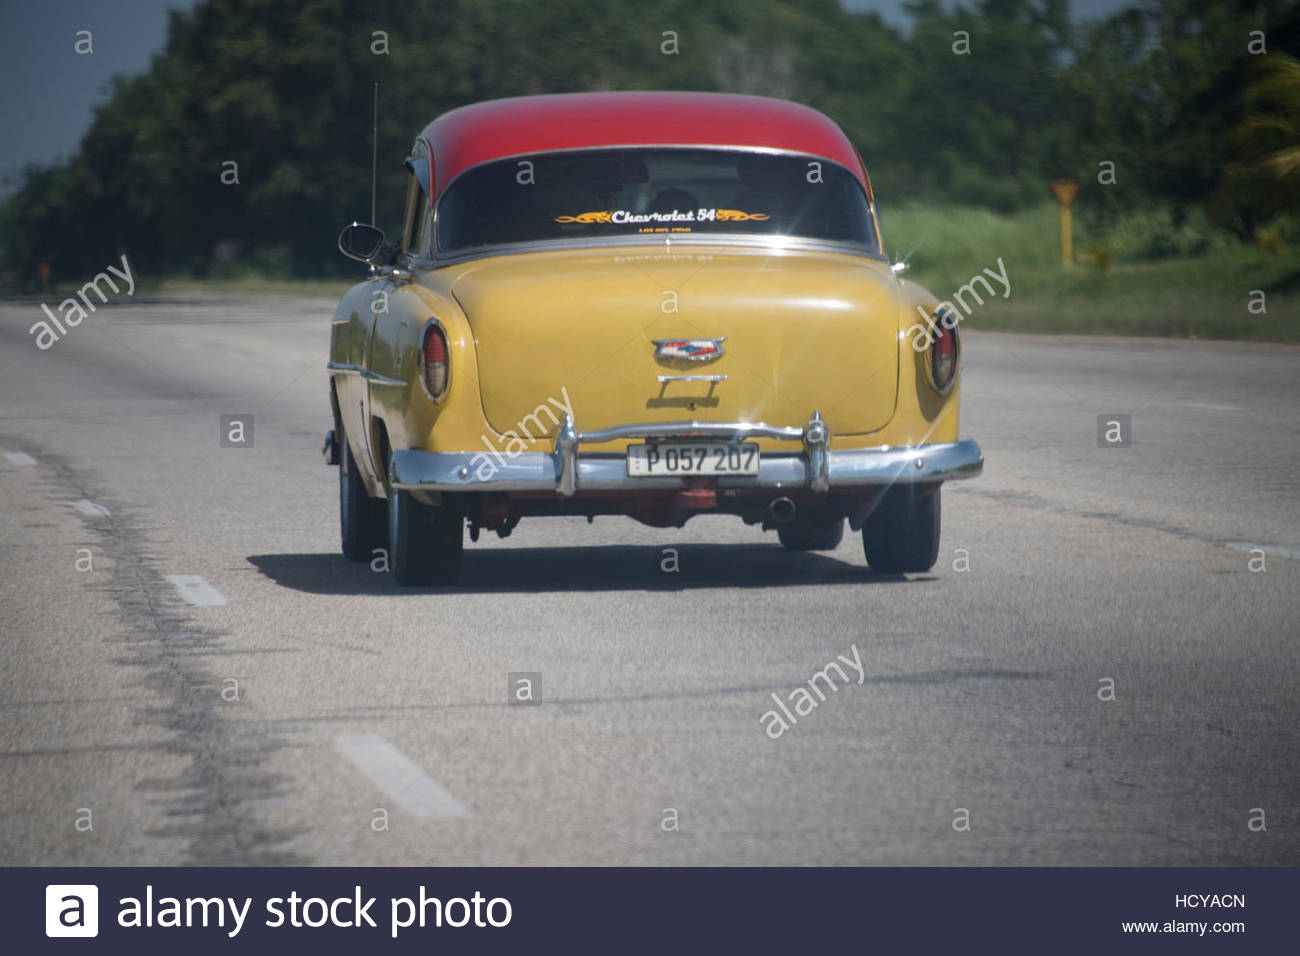 Vintage American car Chevrolet driving alone on the highway. There are many trees alongside the road. - Stock Image